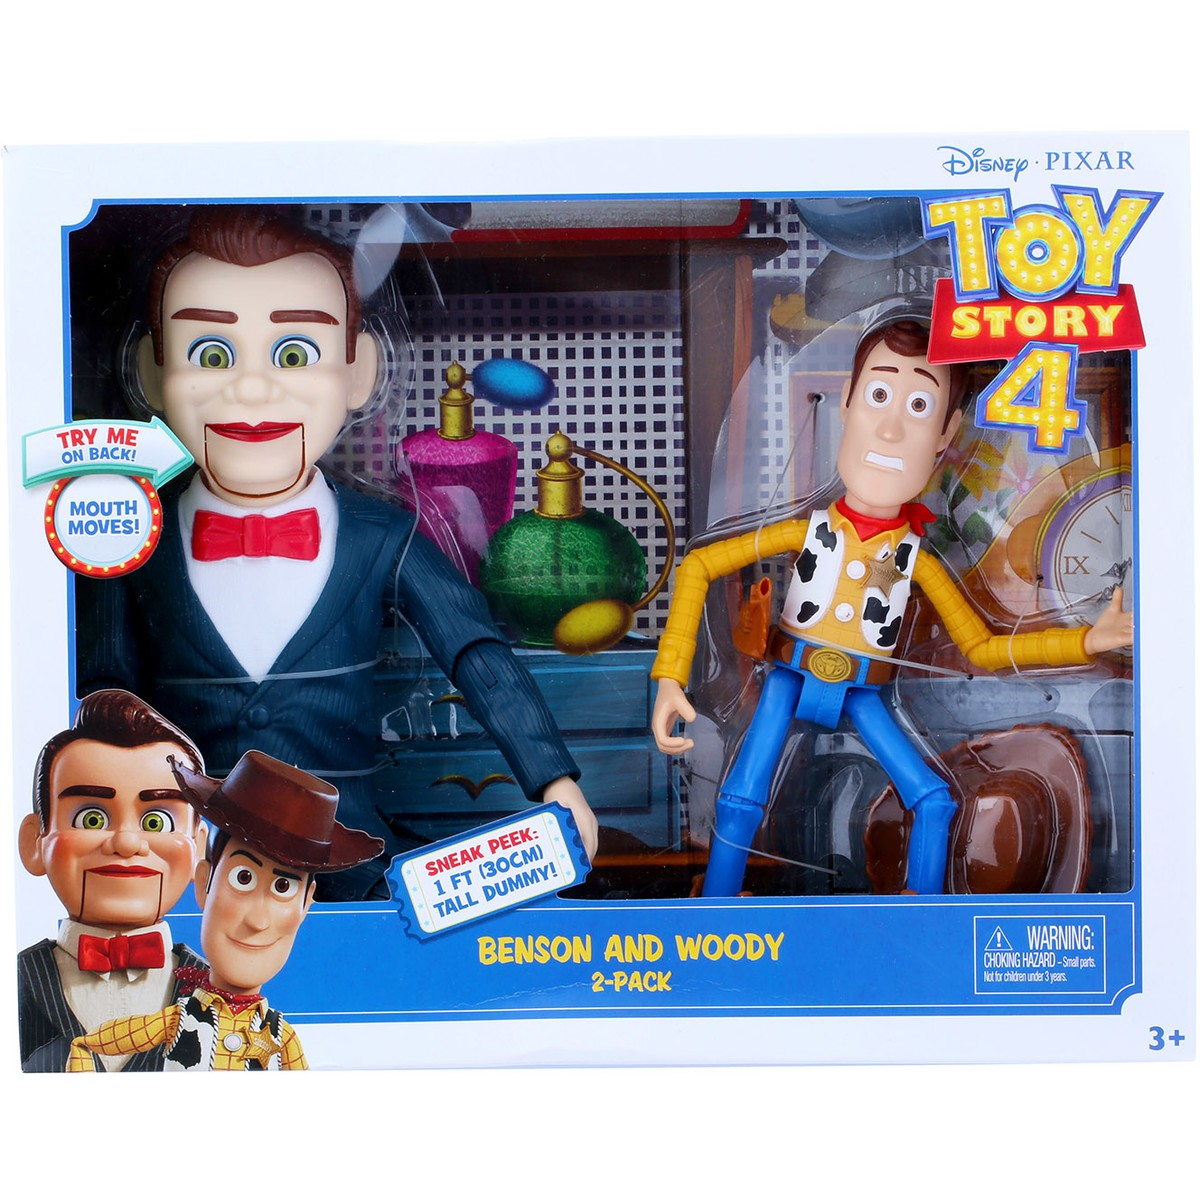 Toy Story 4 Benson and Woody Figures 2-Pack